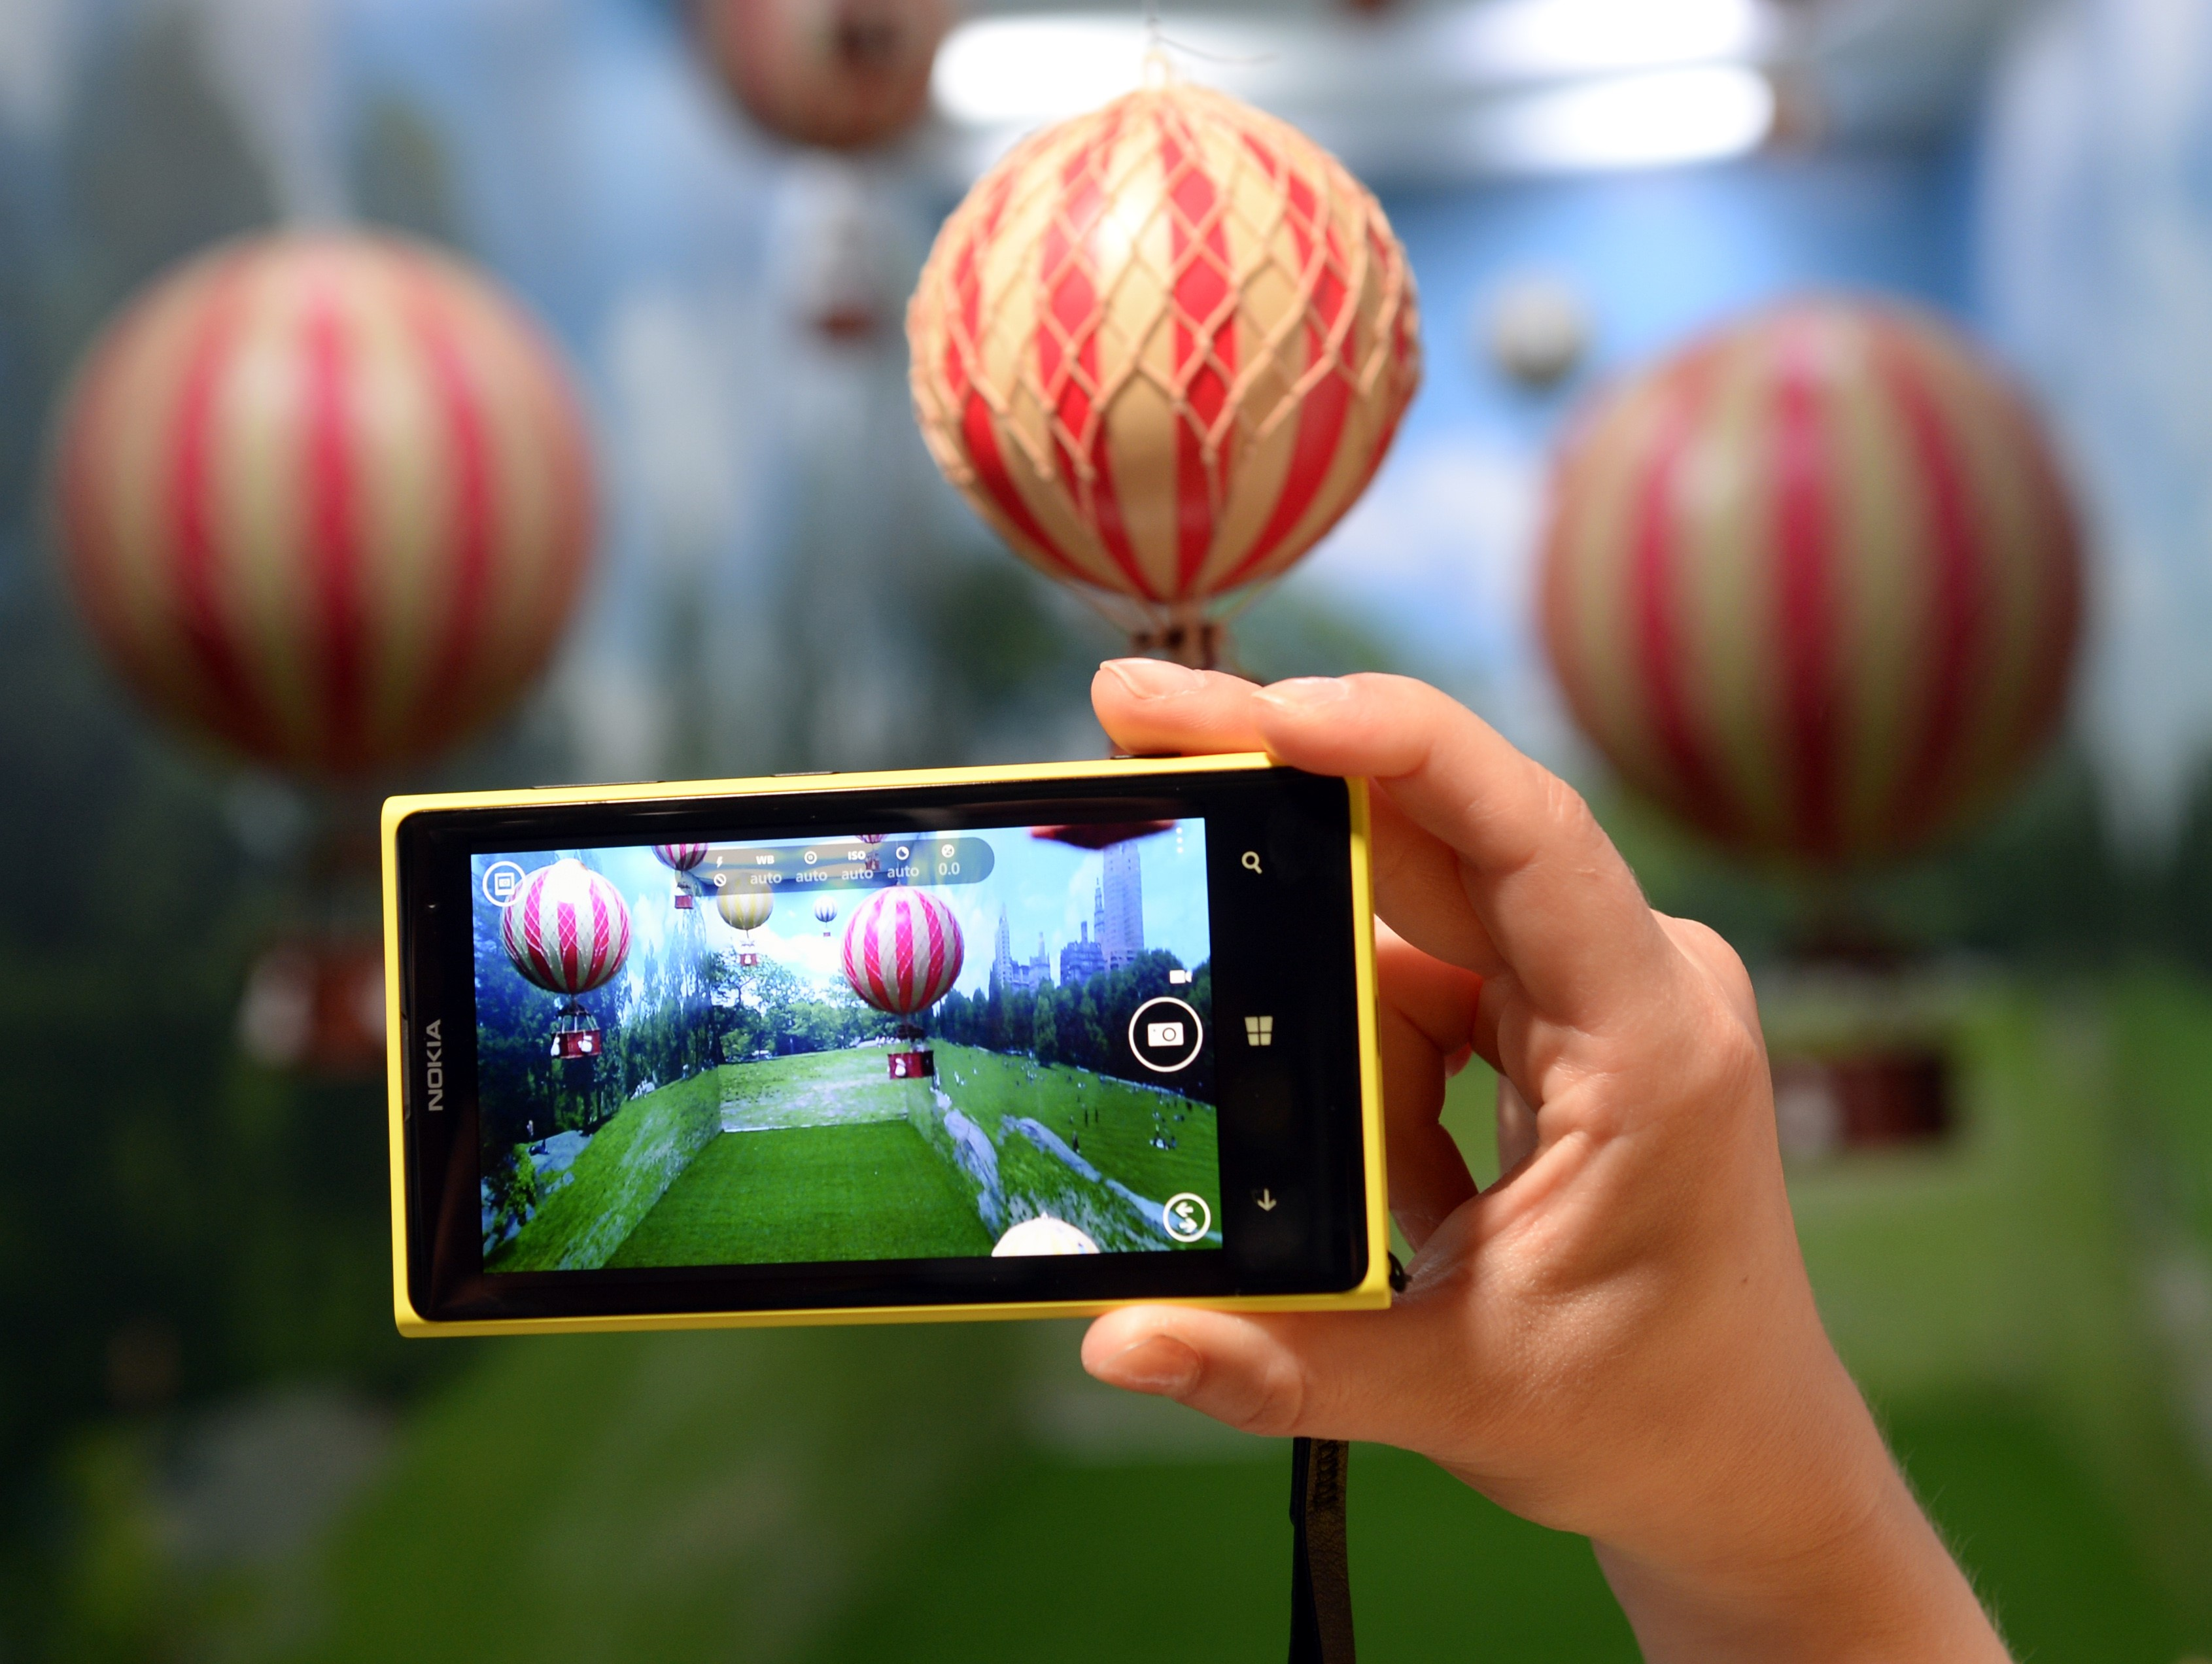 A employee demonstrates the photo capabilities of the Nokia Lumia 1020, a Windows Phone with a 41-megapixel camera after its unveiling in New York City July 11, 2013.